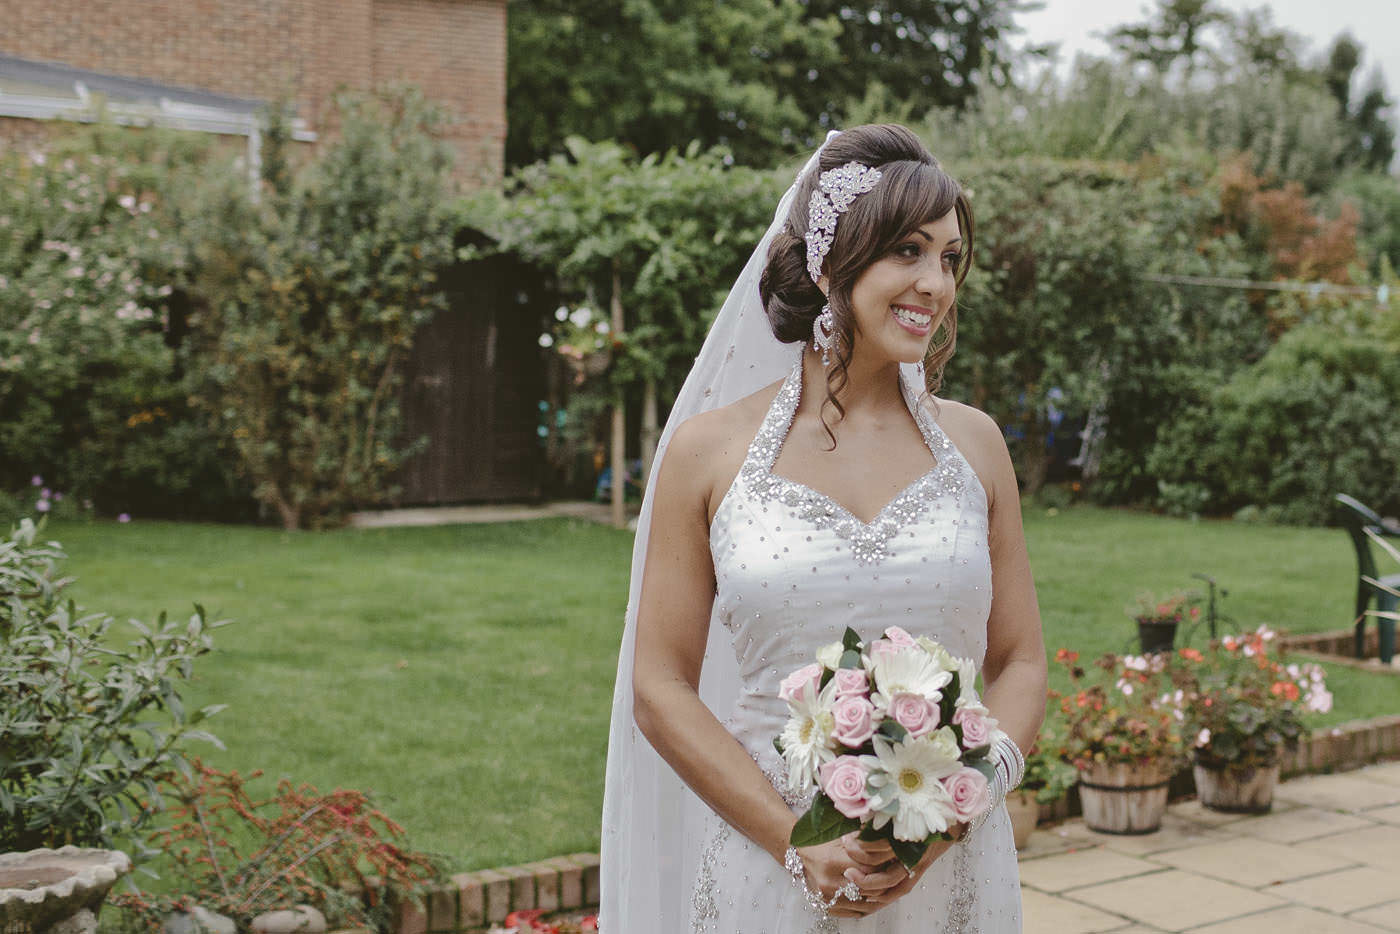 chrisangela virginia water wedding photographer 0033